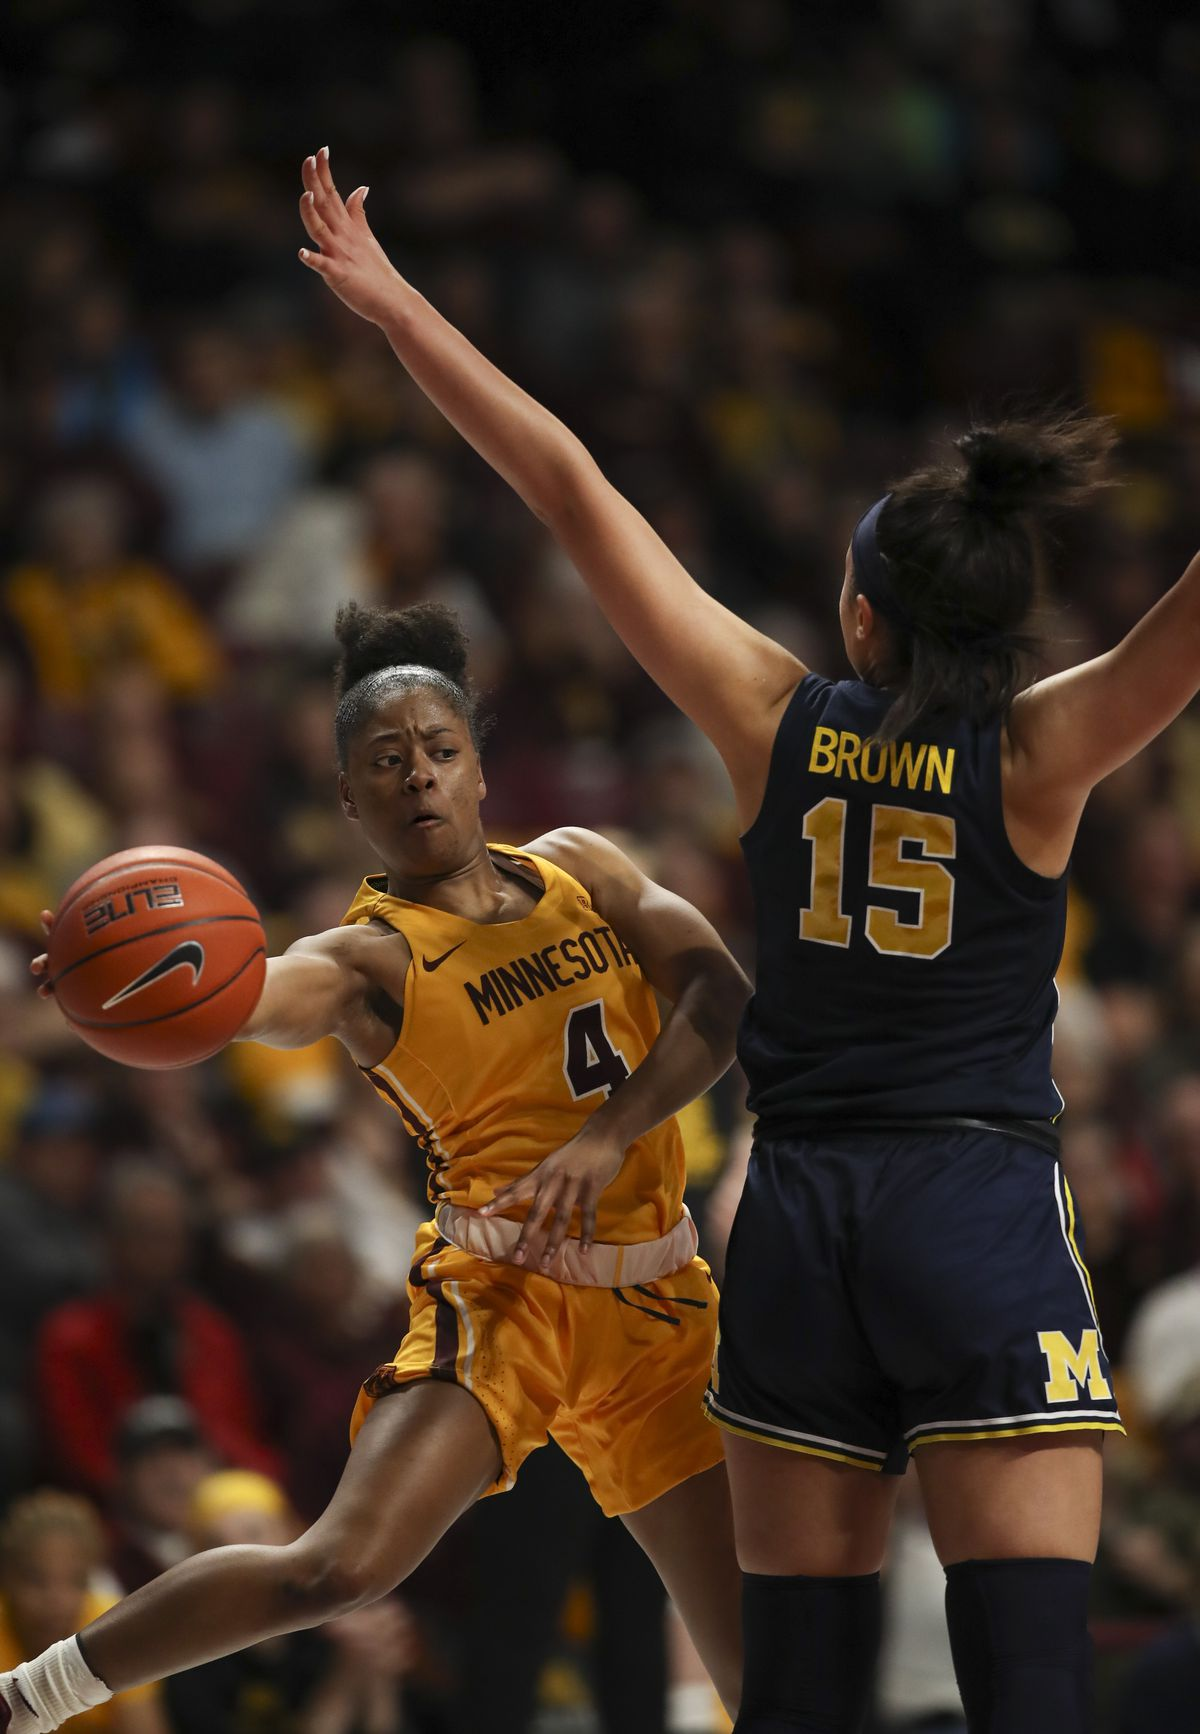 Minnesota Gophers lose to the Michigan Wolverines at home.